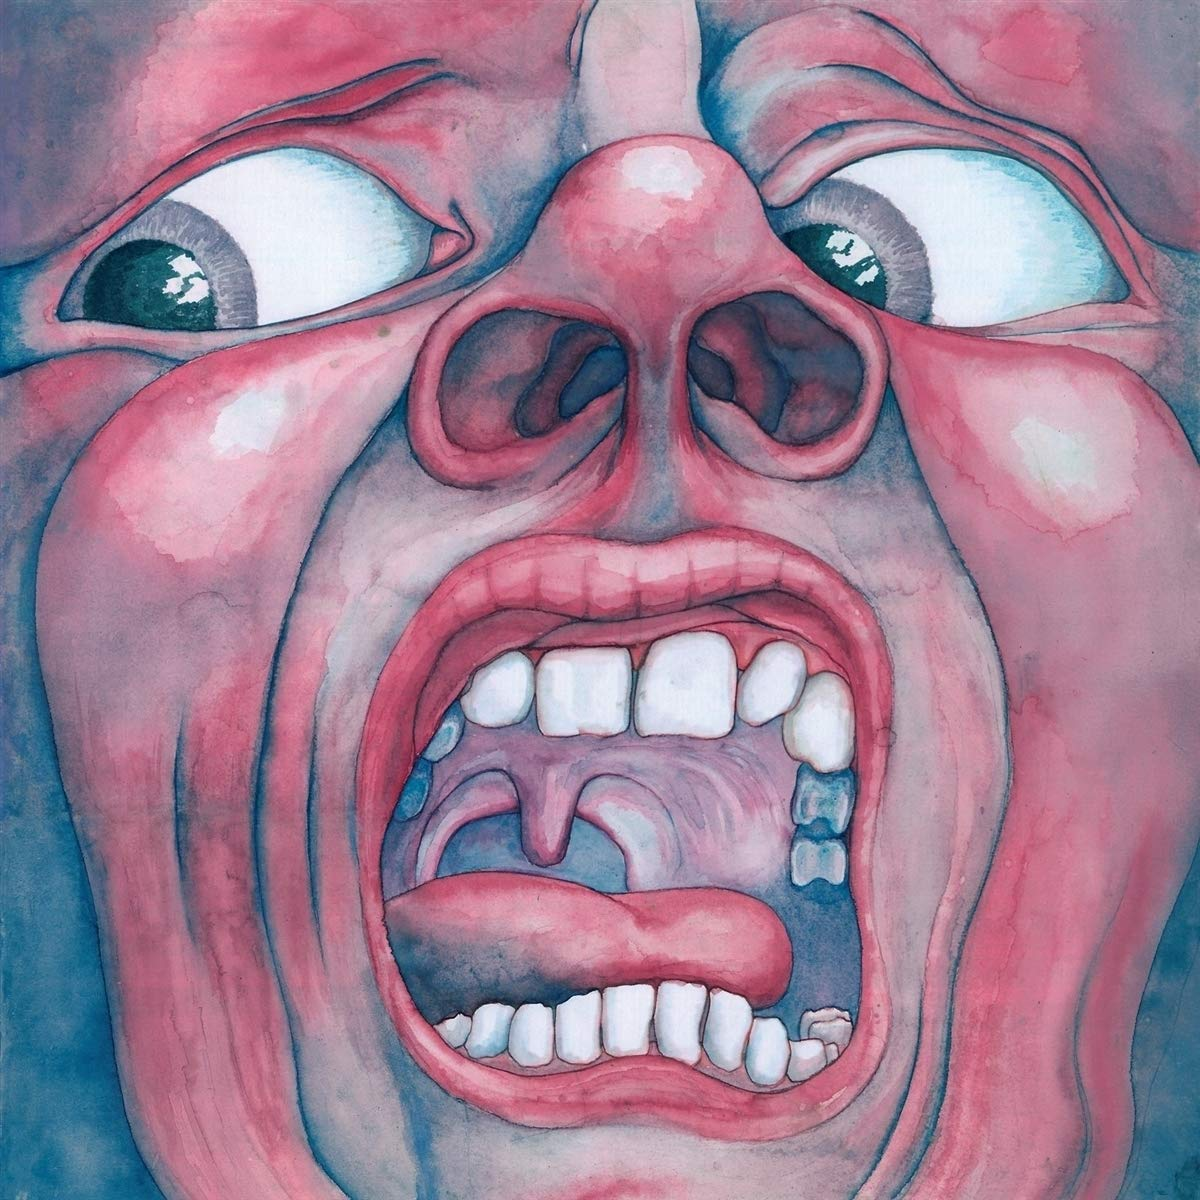 King Crimson - In The Court Of The Crimson King [LP] (Steven Wilson Mix)